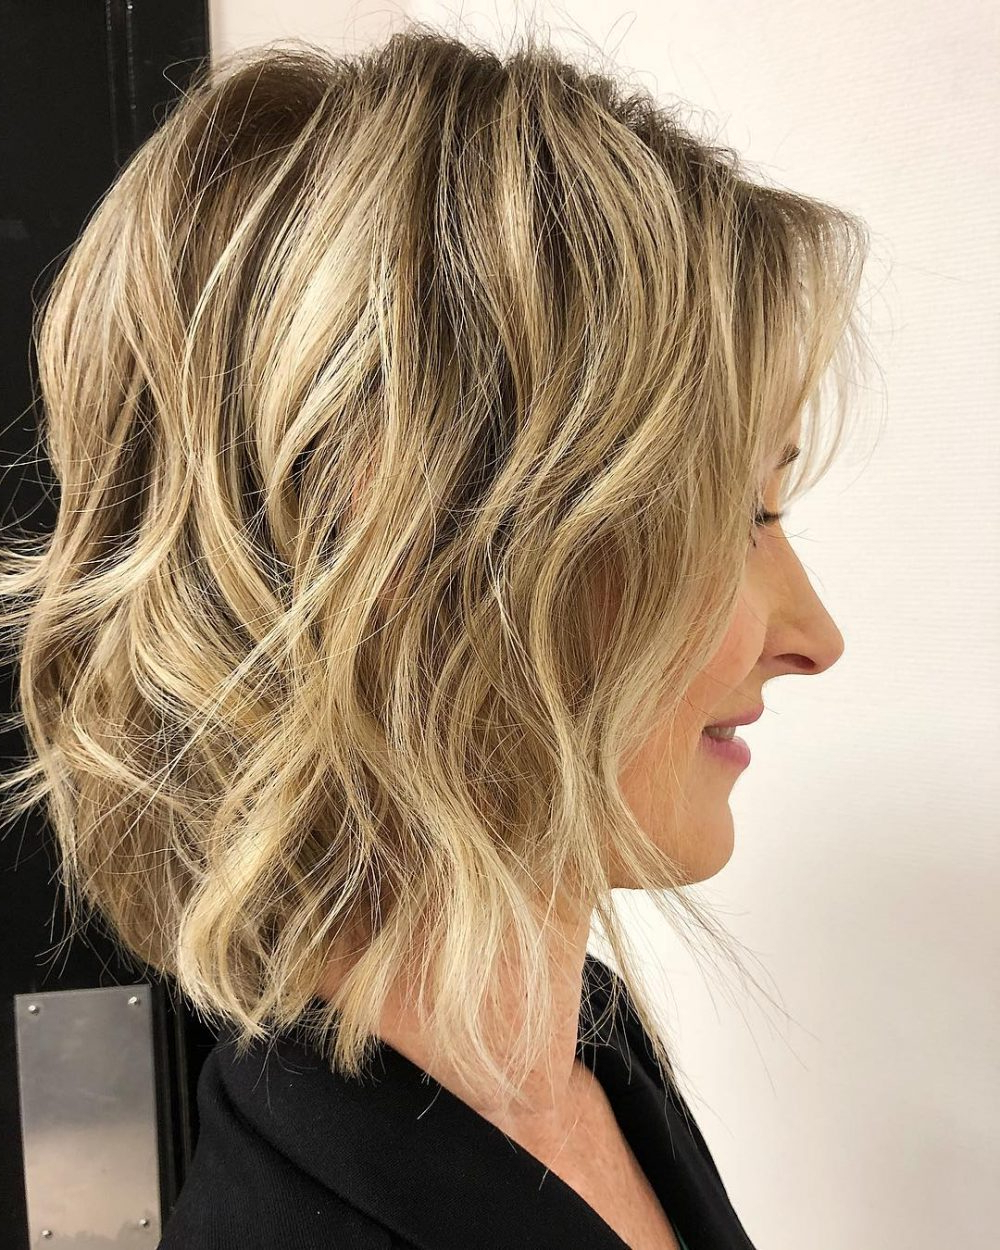 43 Perfect Short Hairstyles For Fine Hair In 2019 For Current Easy Care Medium Hairstyles For Fine Hair (View 4 of 20)